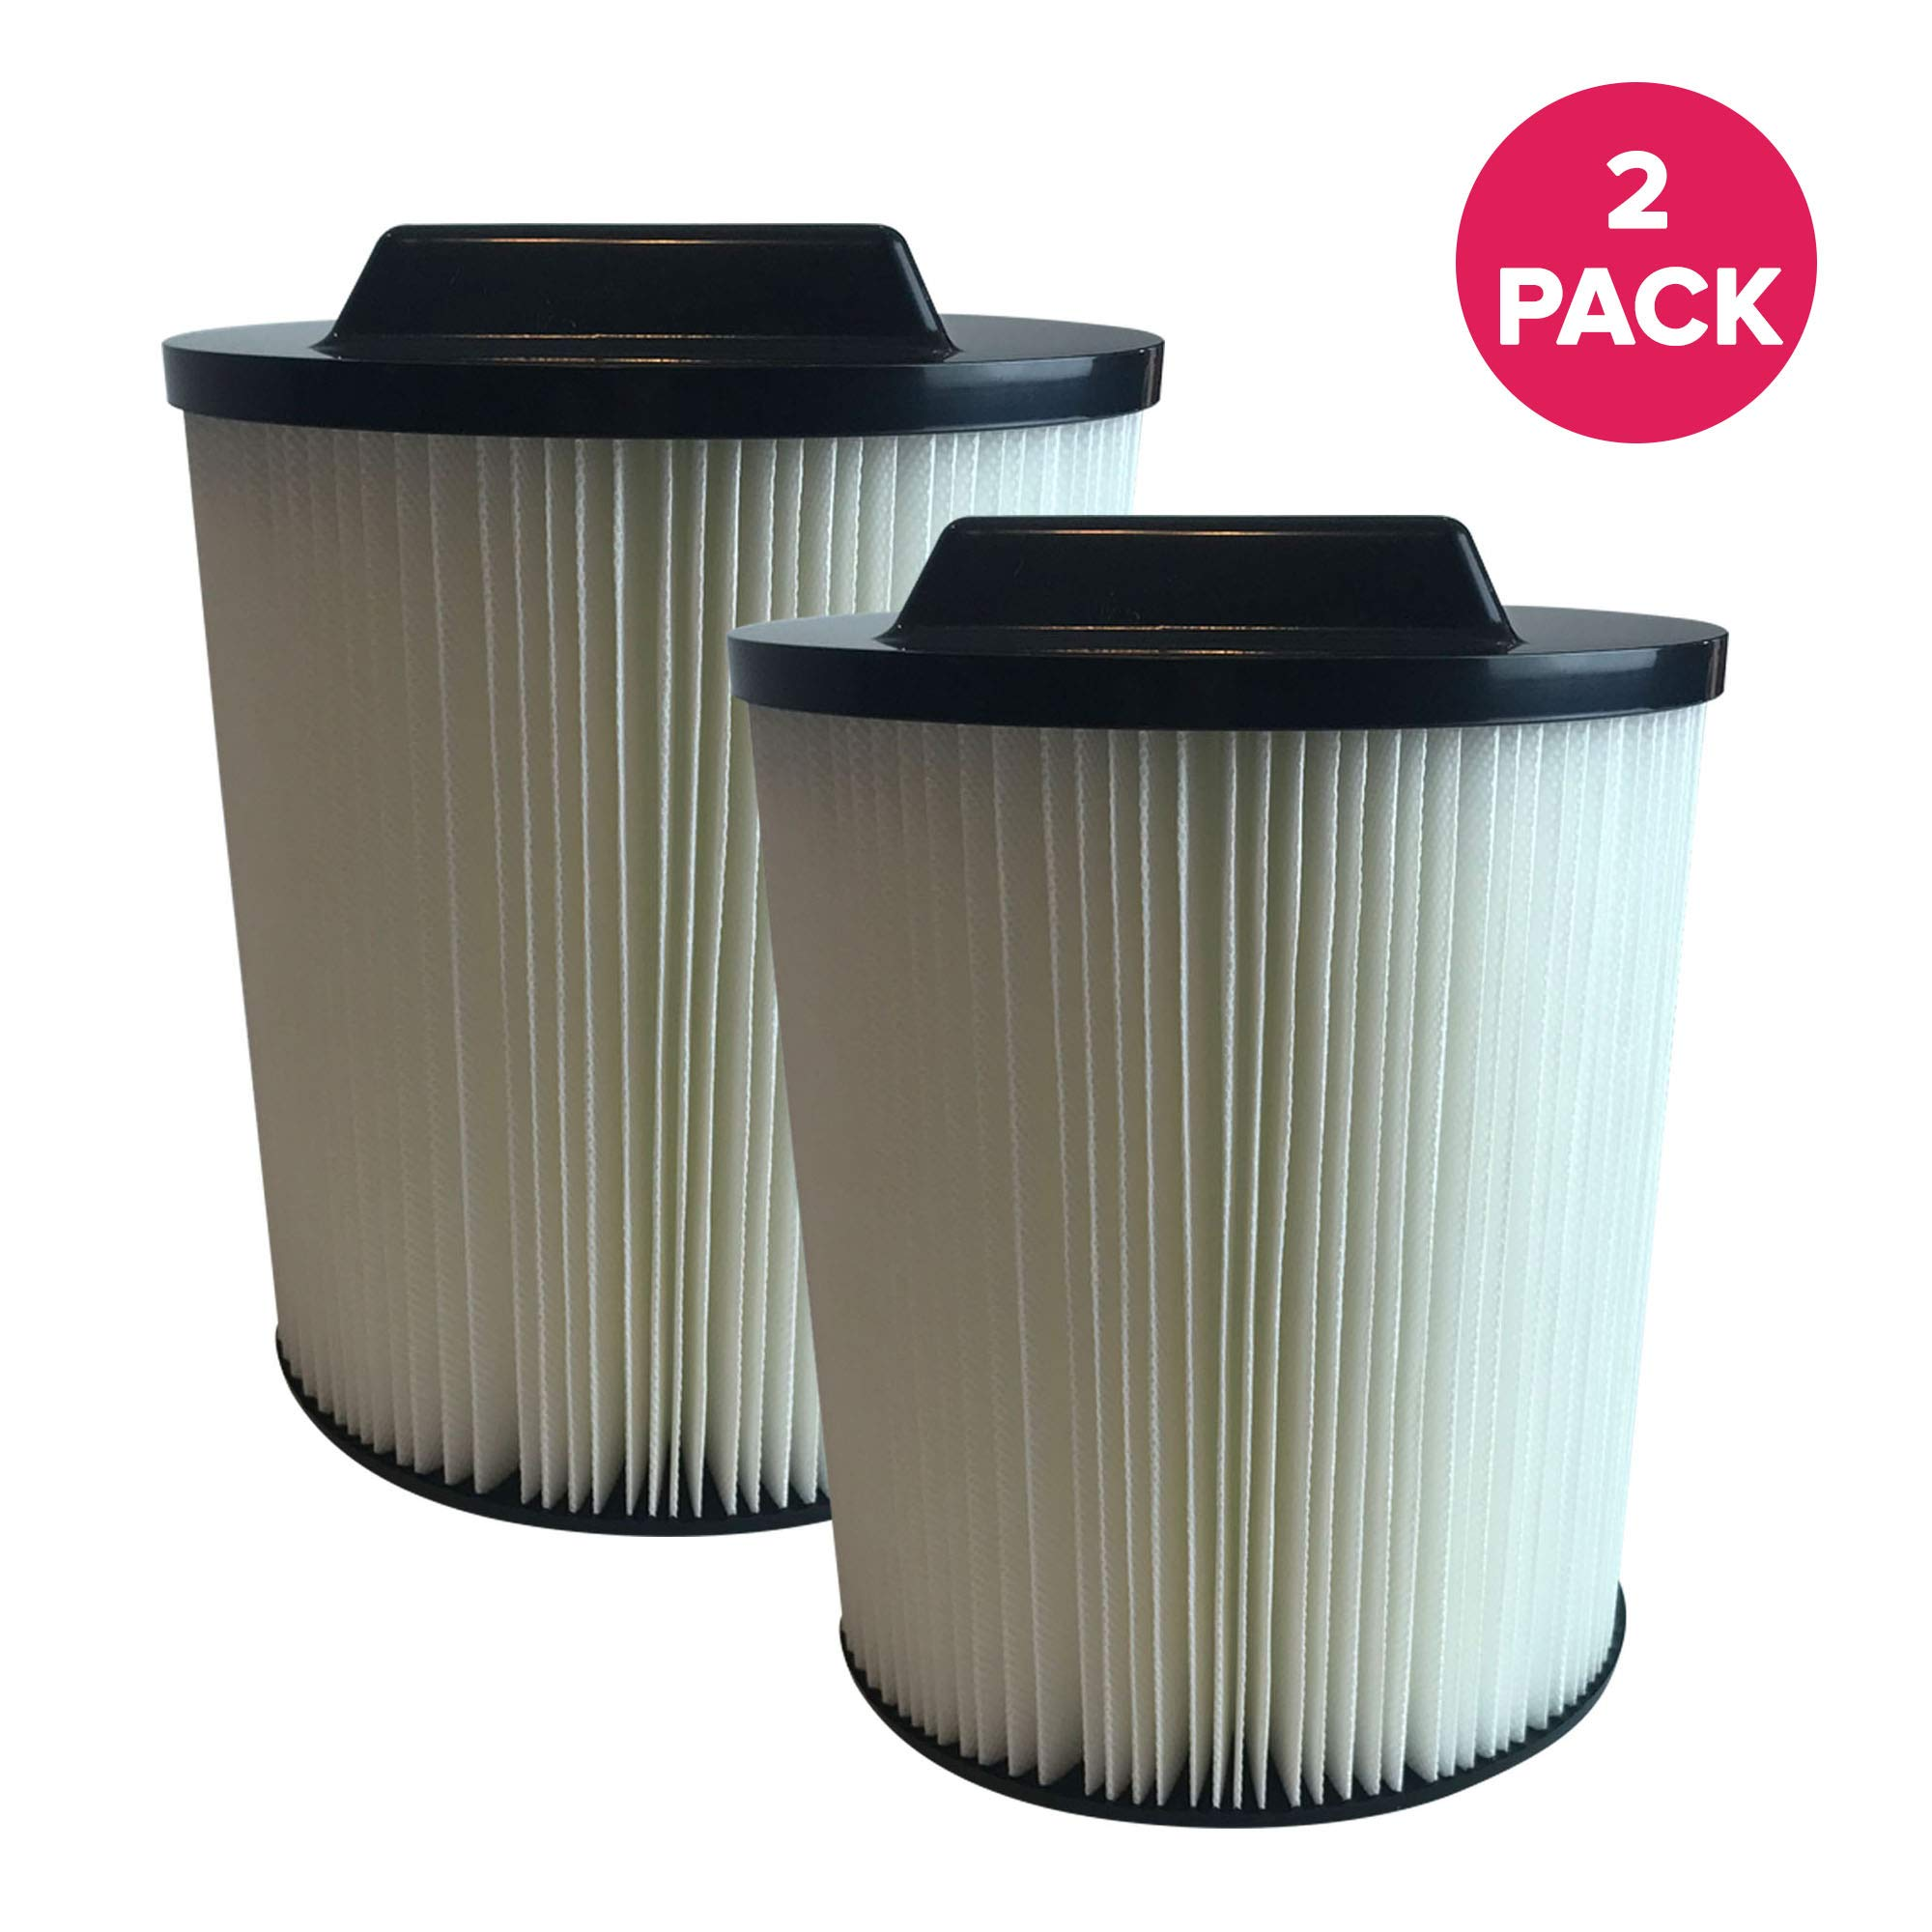 Crucial Vacuum Replacement Vacuum Filter - Compatible with Rigid Vacs Part 00917816000 17816 00917912000 17912 9-17816 VF4000 - Fits Models 6 to 20 Gallon Wet, Dry Vacuums - Bulk (2 Pack)